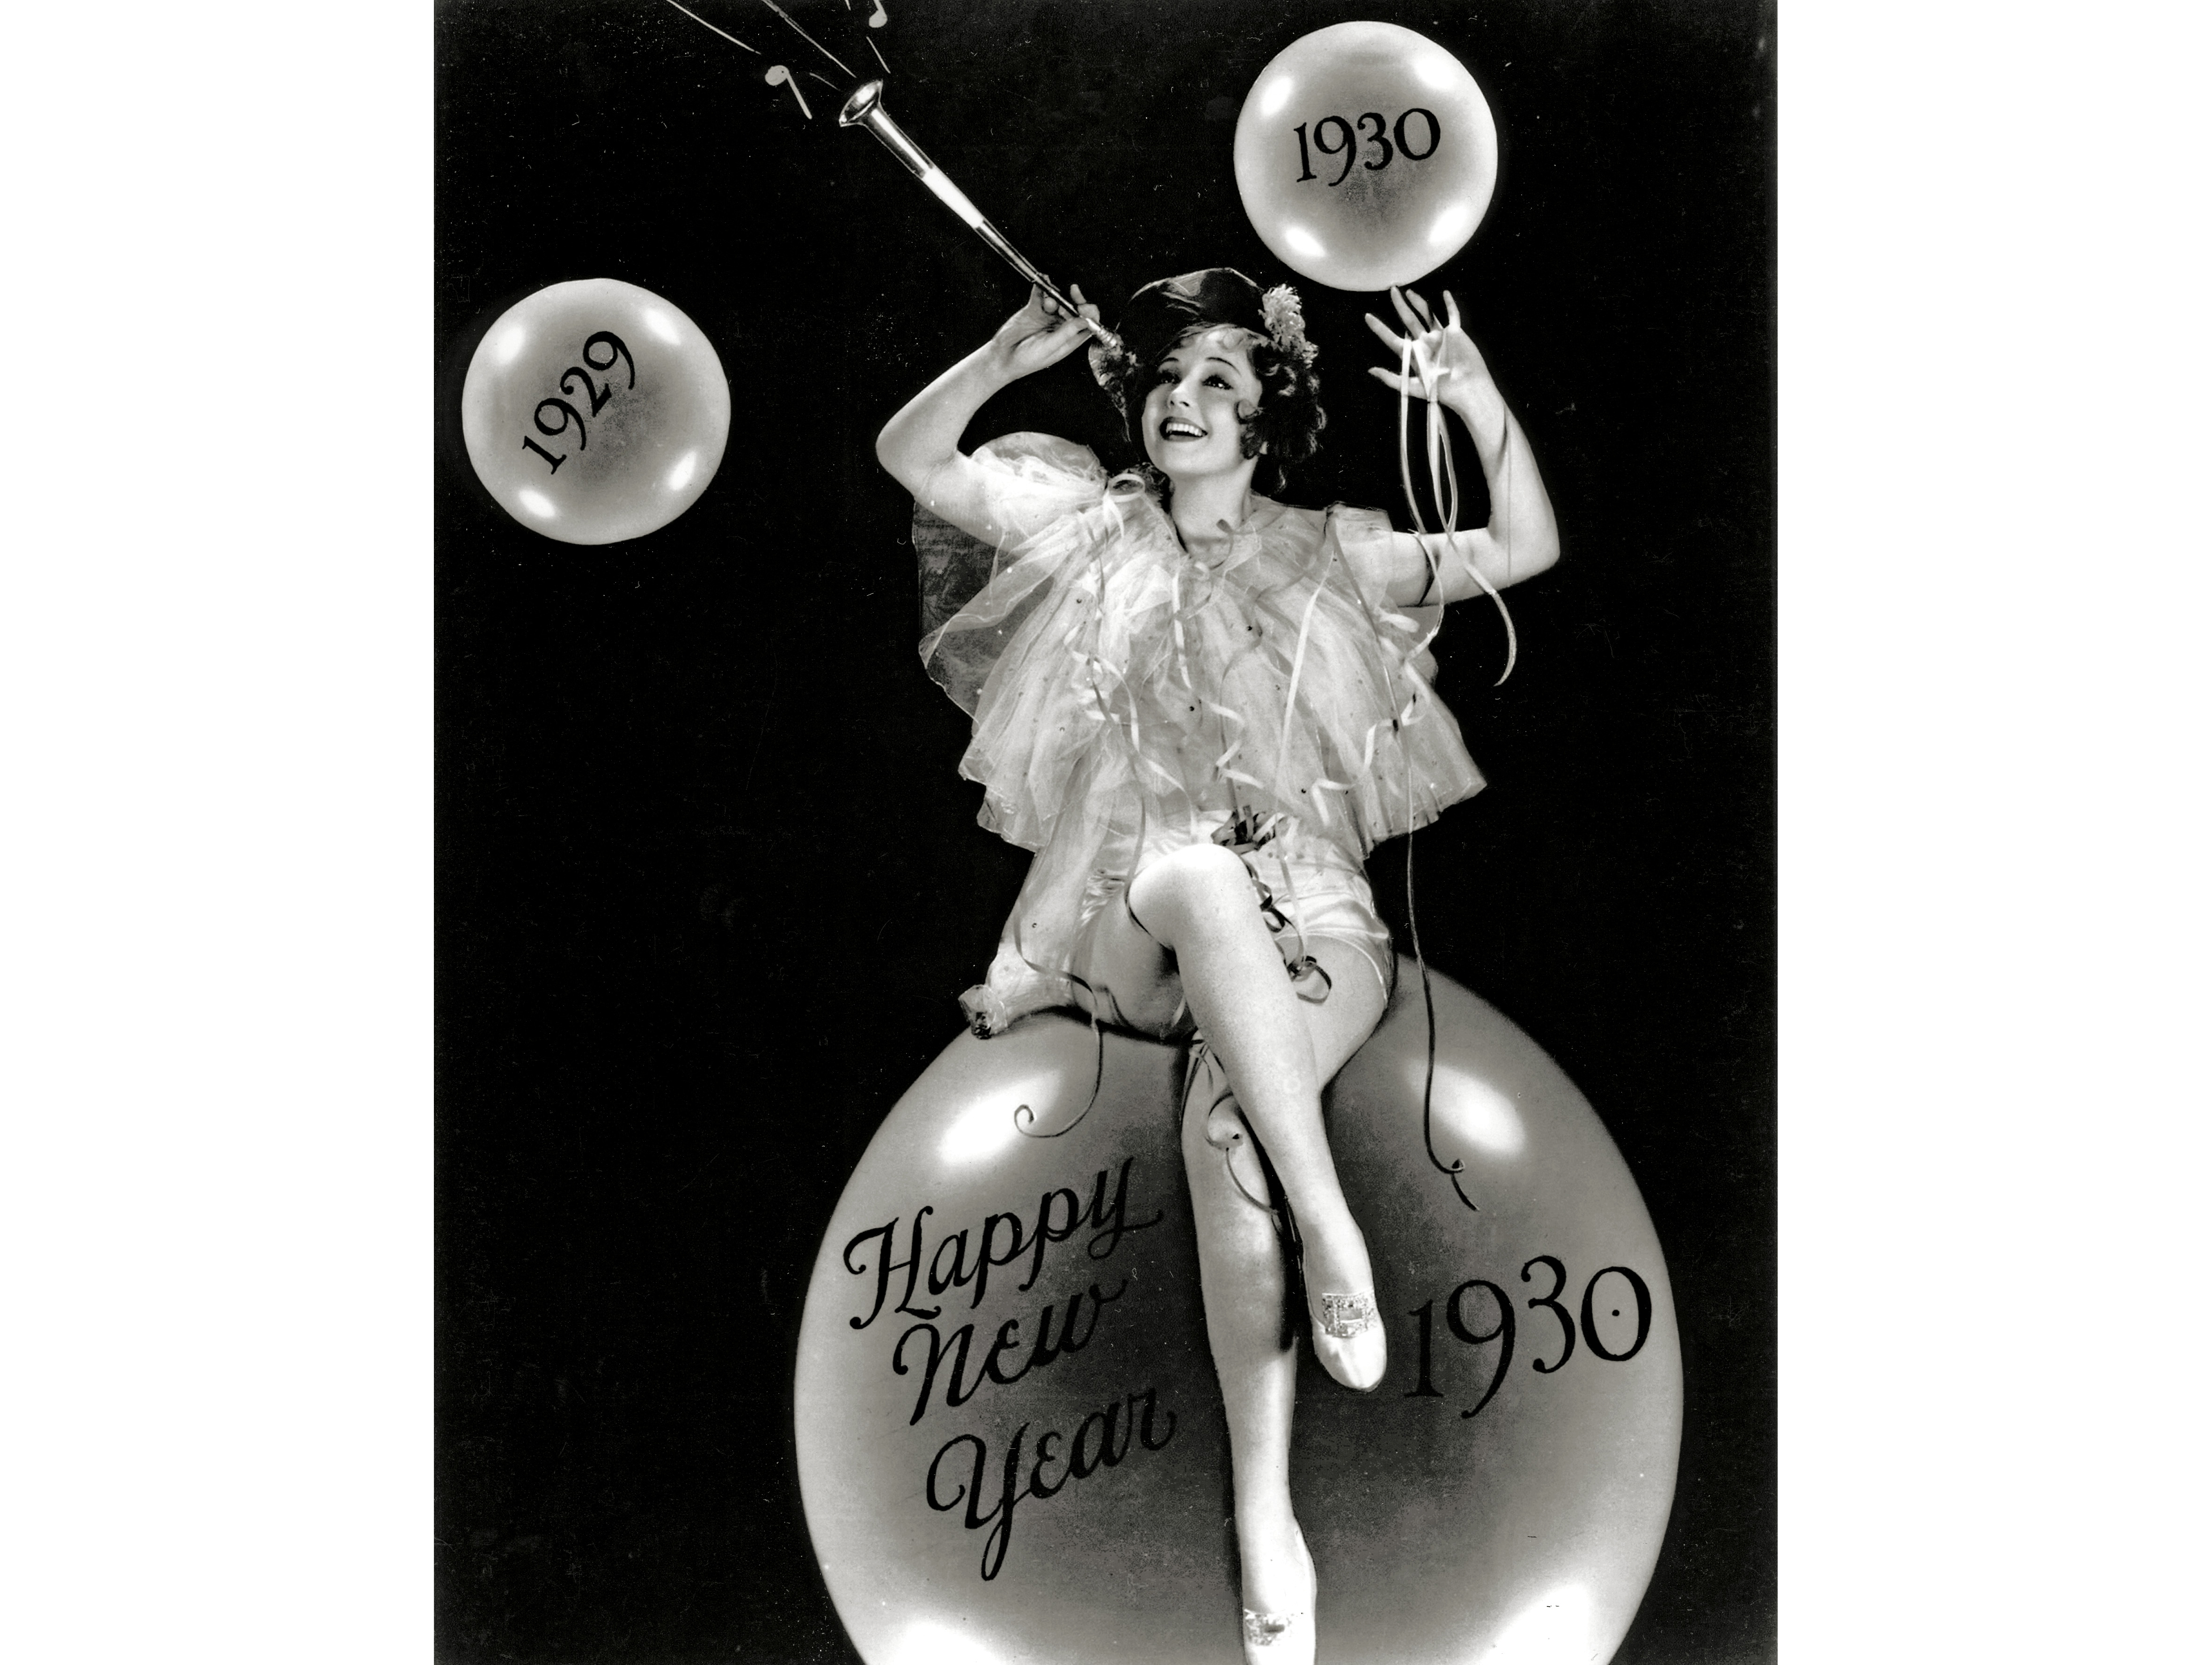 Nancy Carroll sits atop a champagne bubble to help ring in 1930. Her effervescent, bubbly personality matched the heady, dizzying spirit of the 1920s.